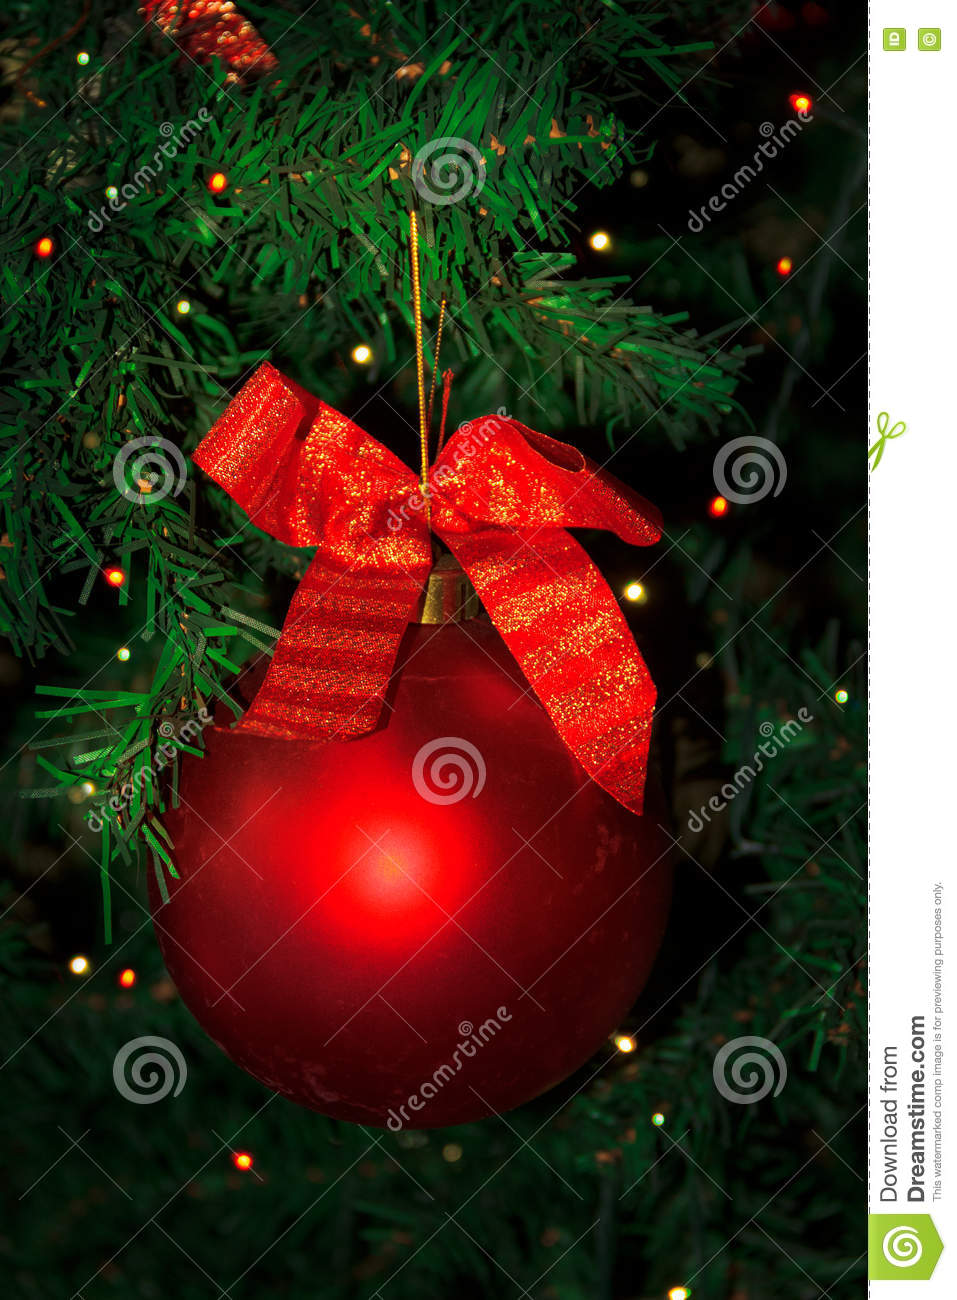 Christmas tree decorated with red bauble hanging